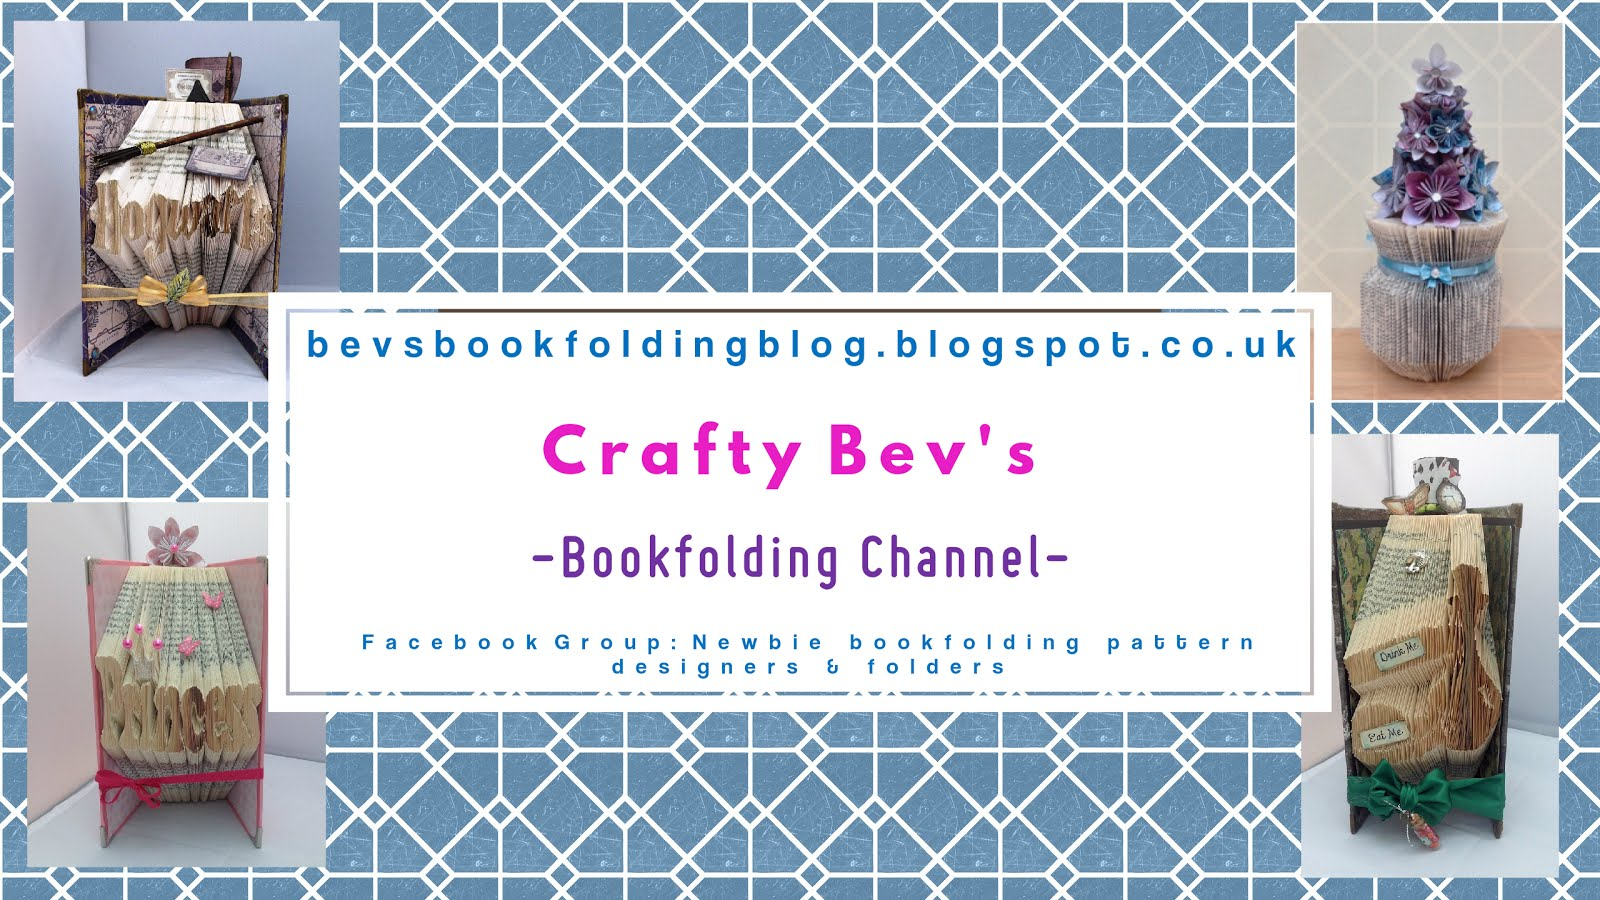 Crafty Bev's Bookfolding Channel